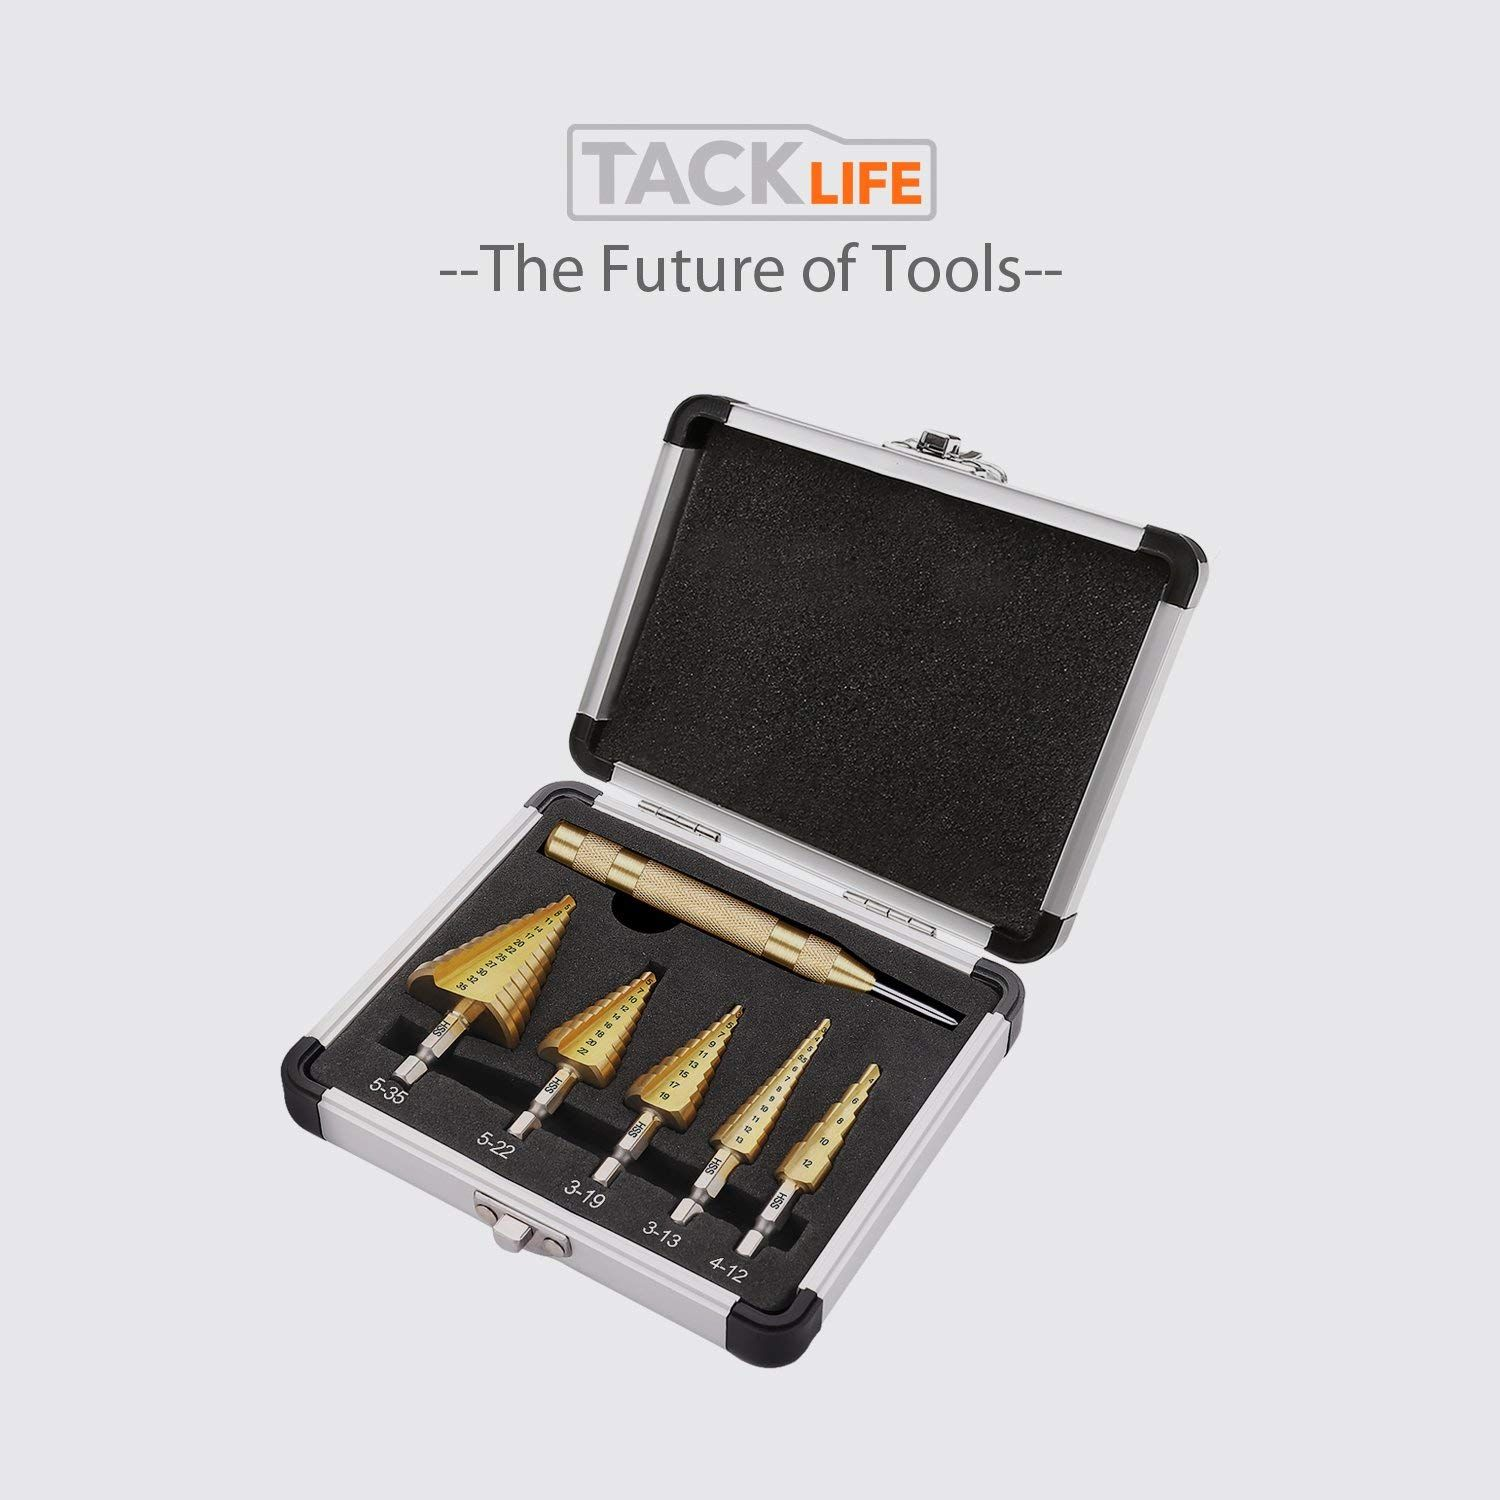 Tacklife Pdh06a Titanium Coated Hss Step Drill Bit Set With 127mm Automatic Center Punch Deal Price 13 99 Cod Drill Bit Sets Step Drill Step Drill Bits